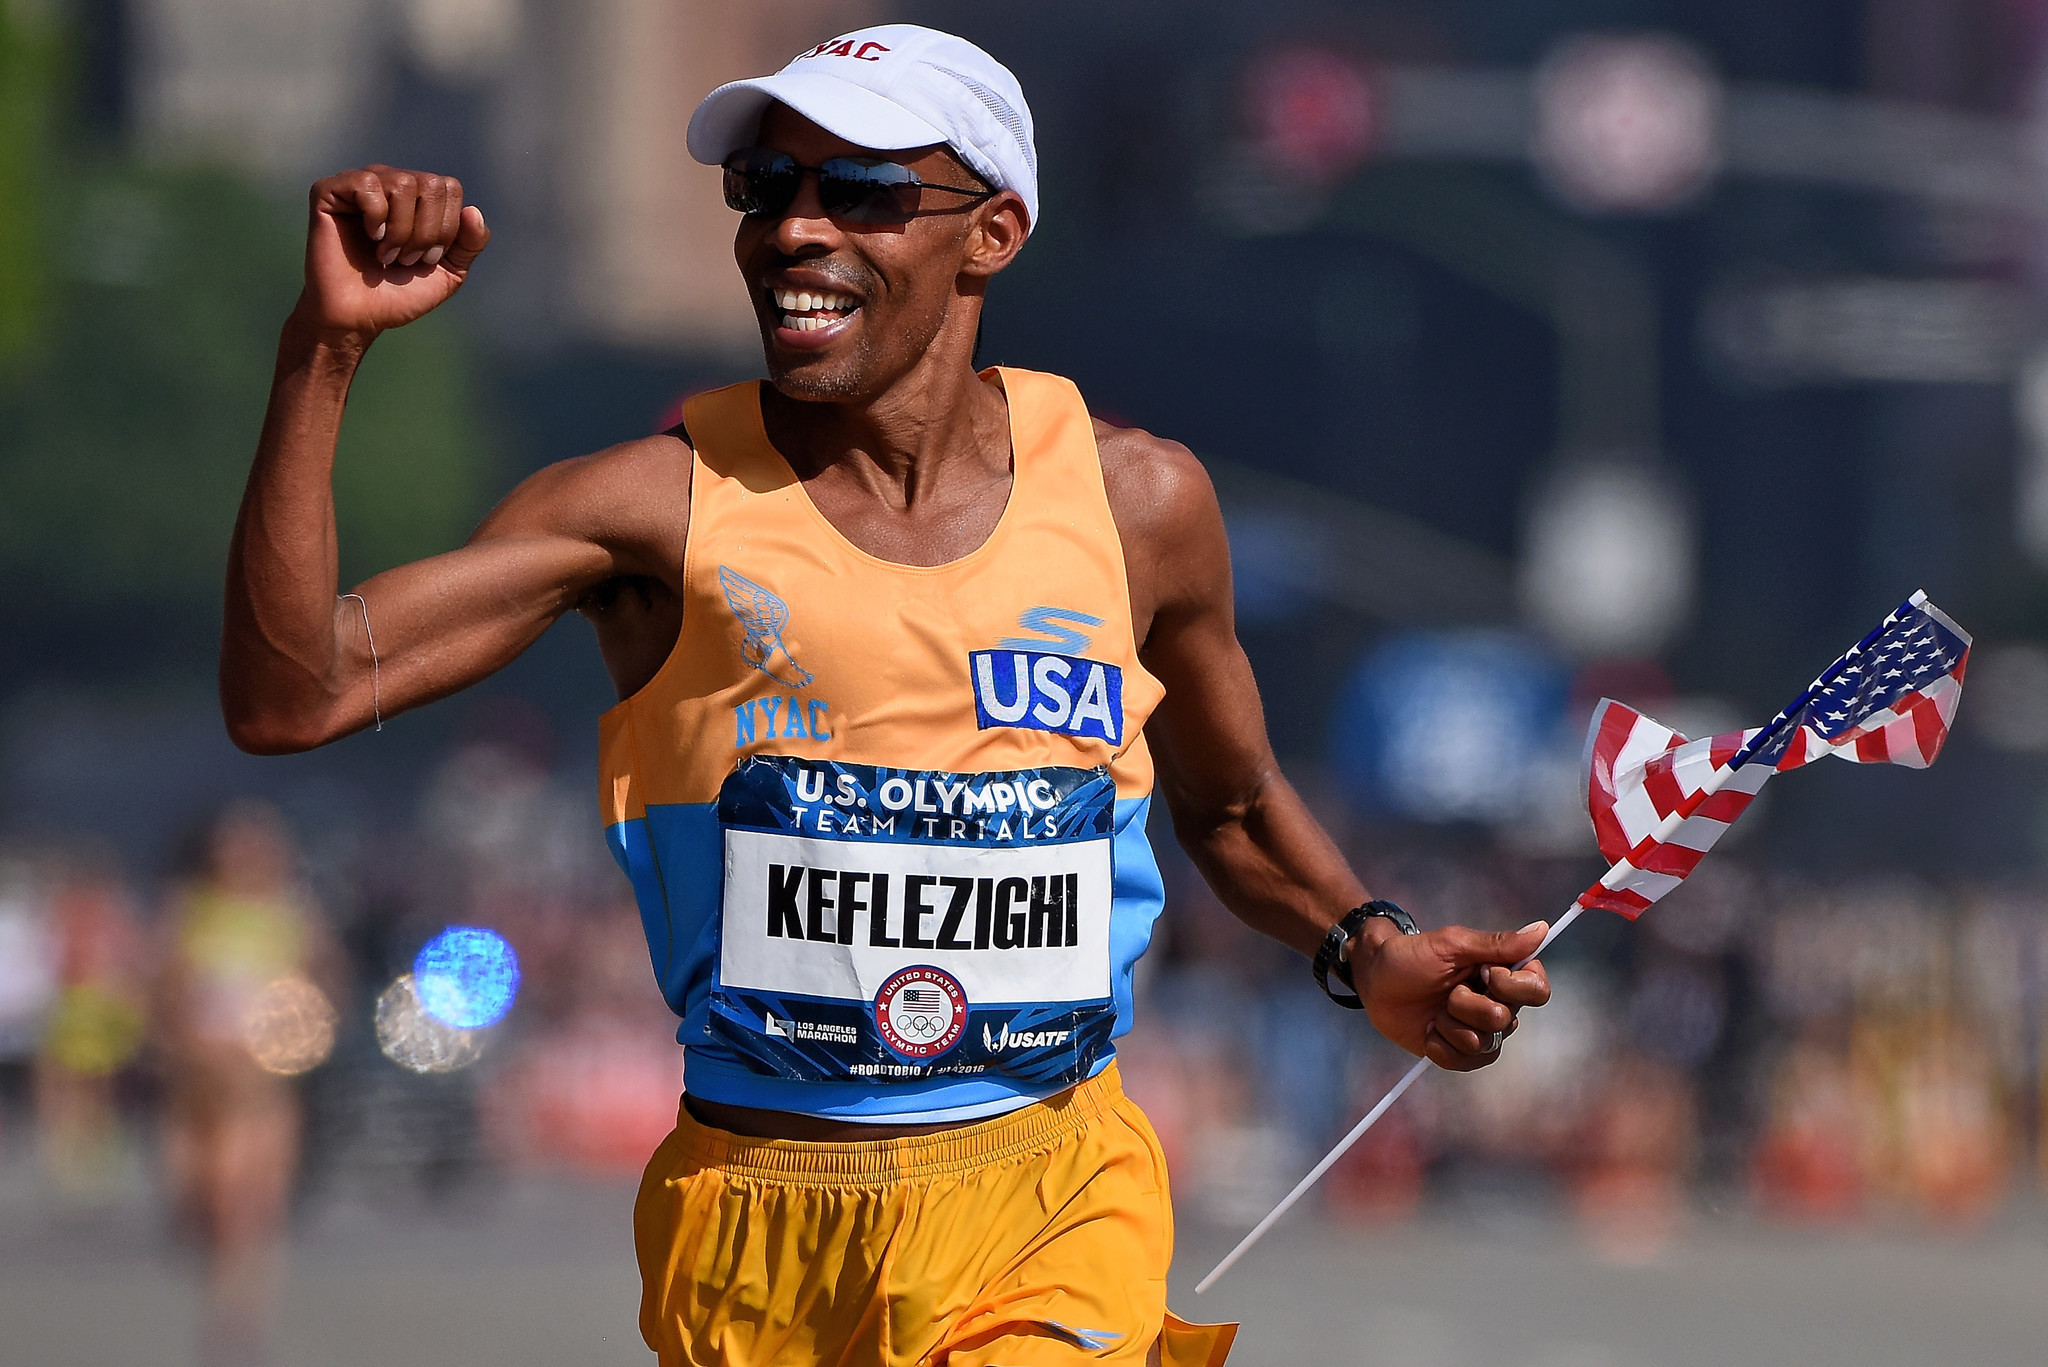 Meb Keflezighi, the best American long distance runner ever, to retire after Sunday's New York City Marathon